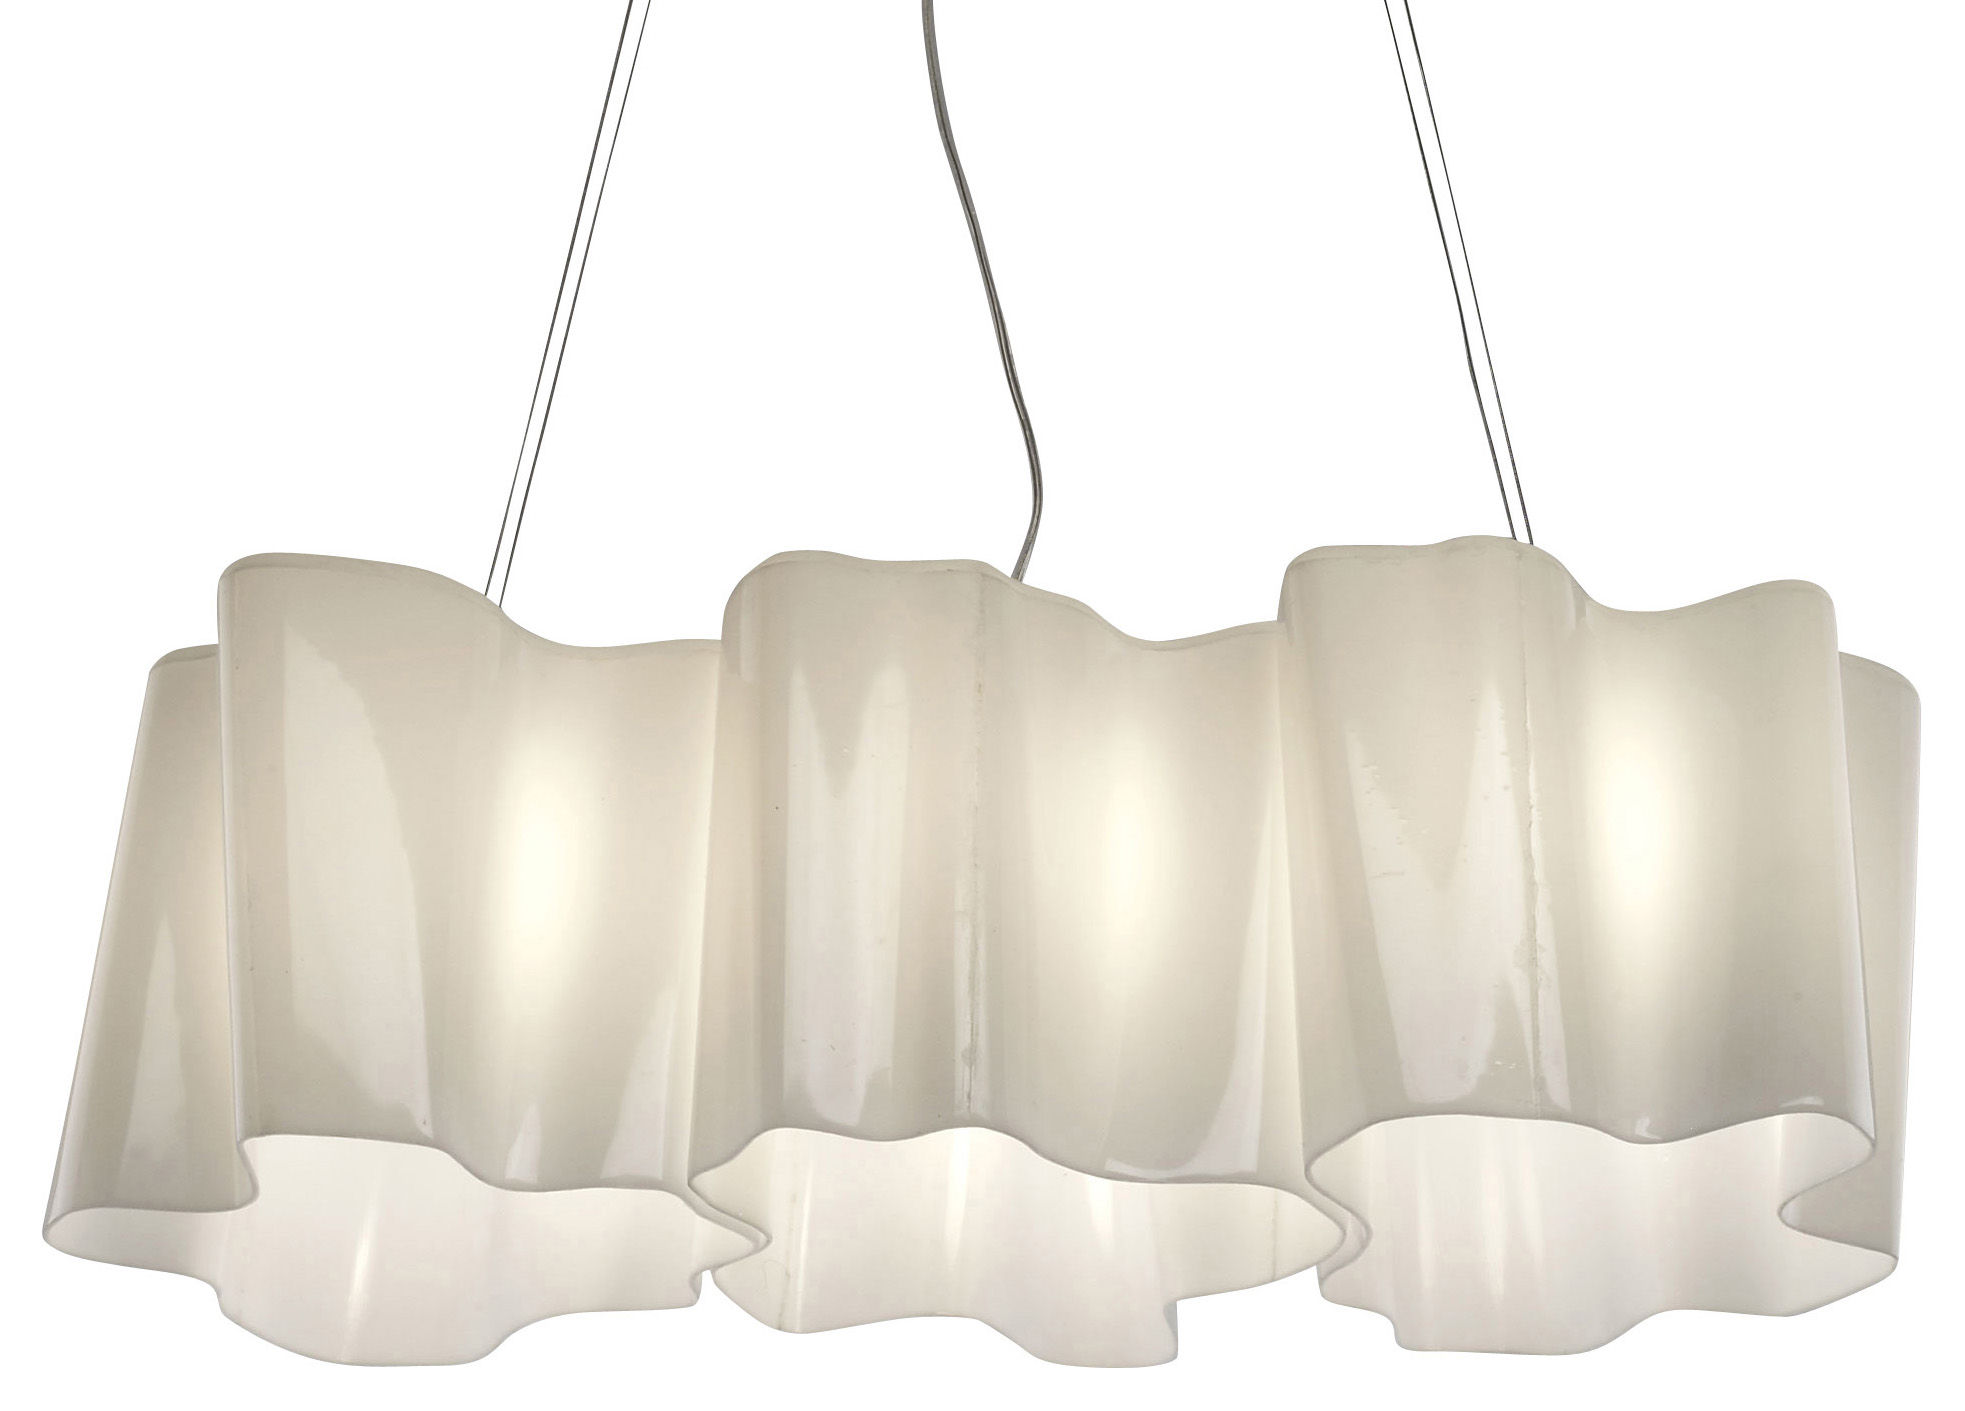 Lighting - Pendant Lighting - Logico grande Pendant - 3 elements in a row by Artemide - White - big - Blown glass